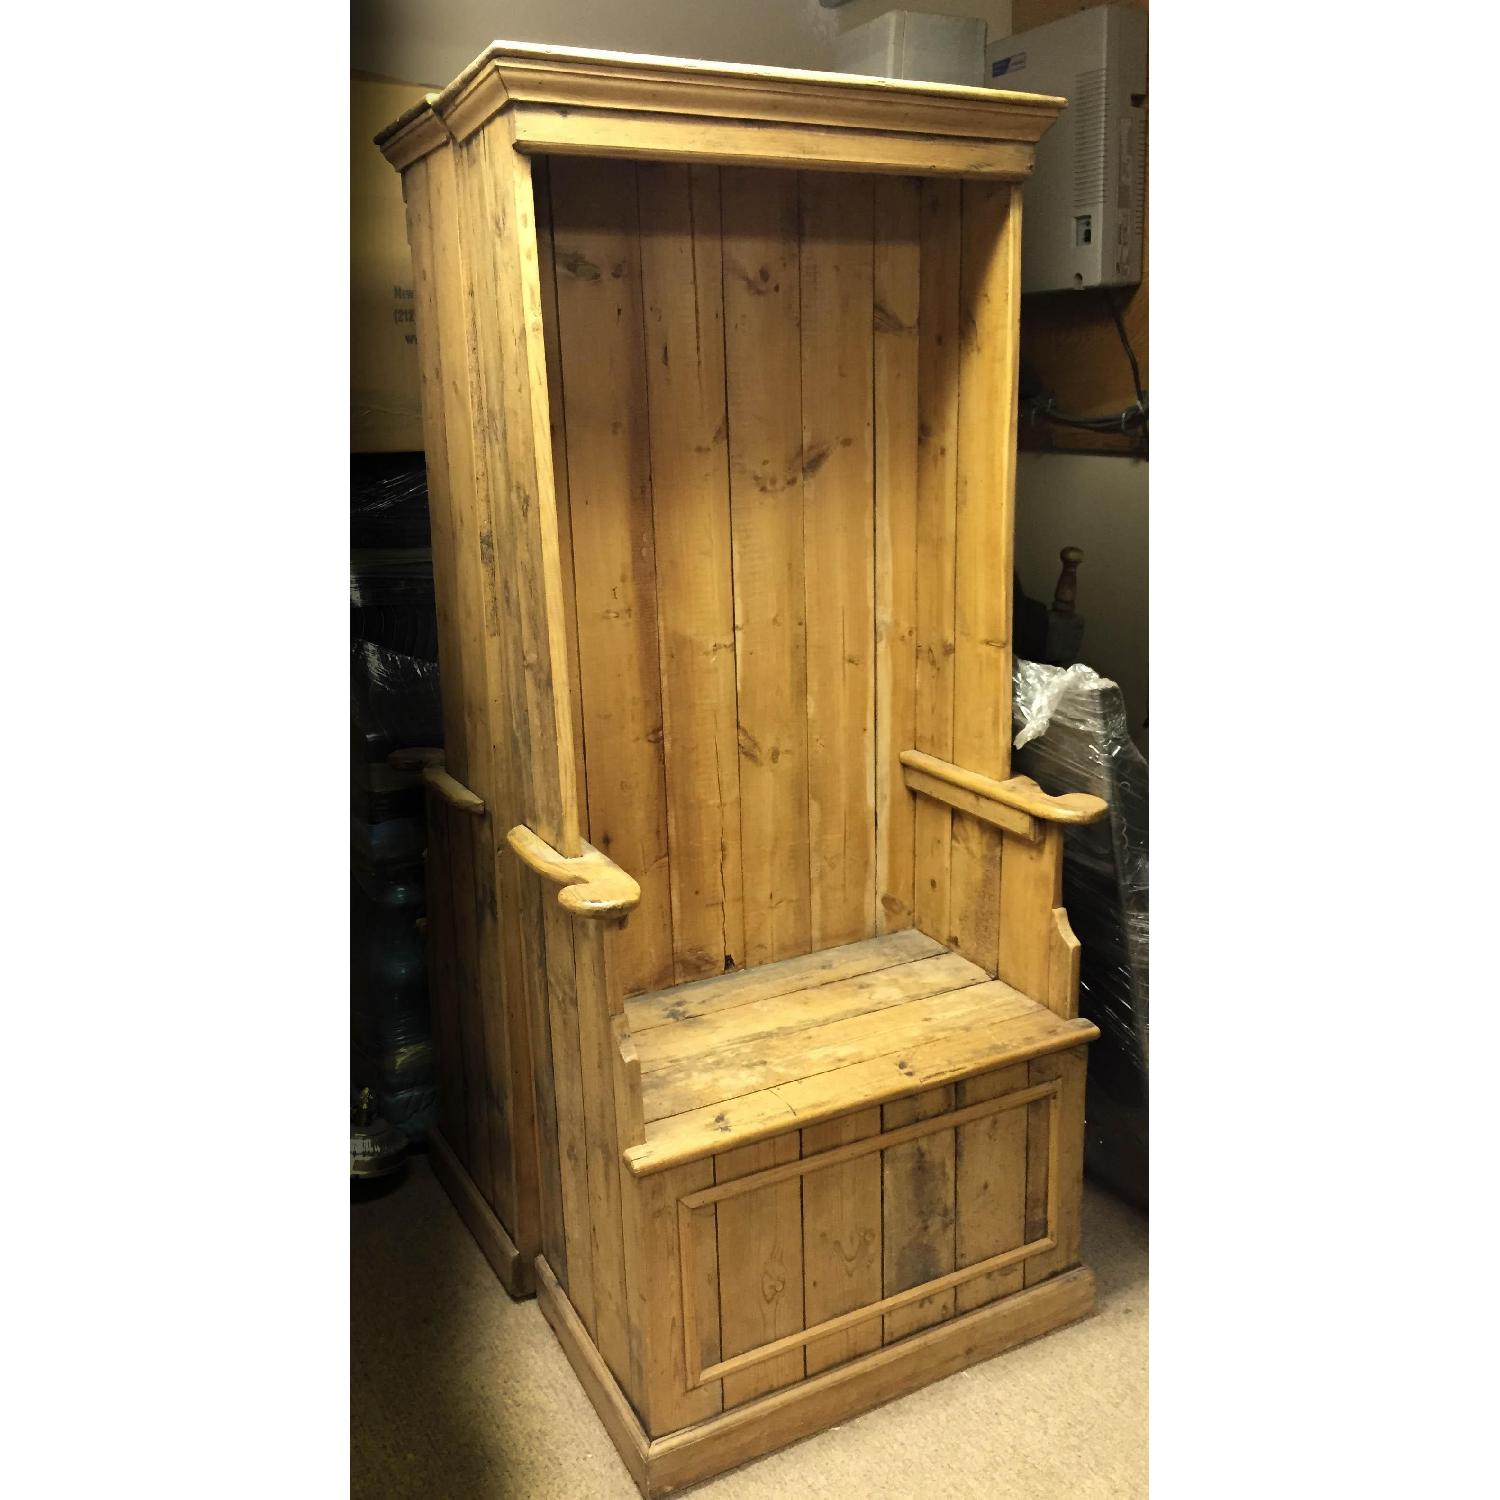 Antique Pine Porters Chairs - image-2